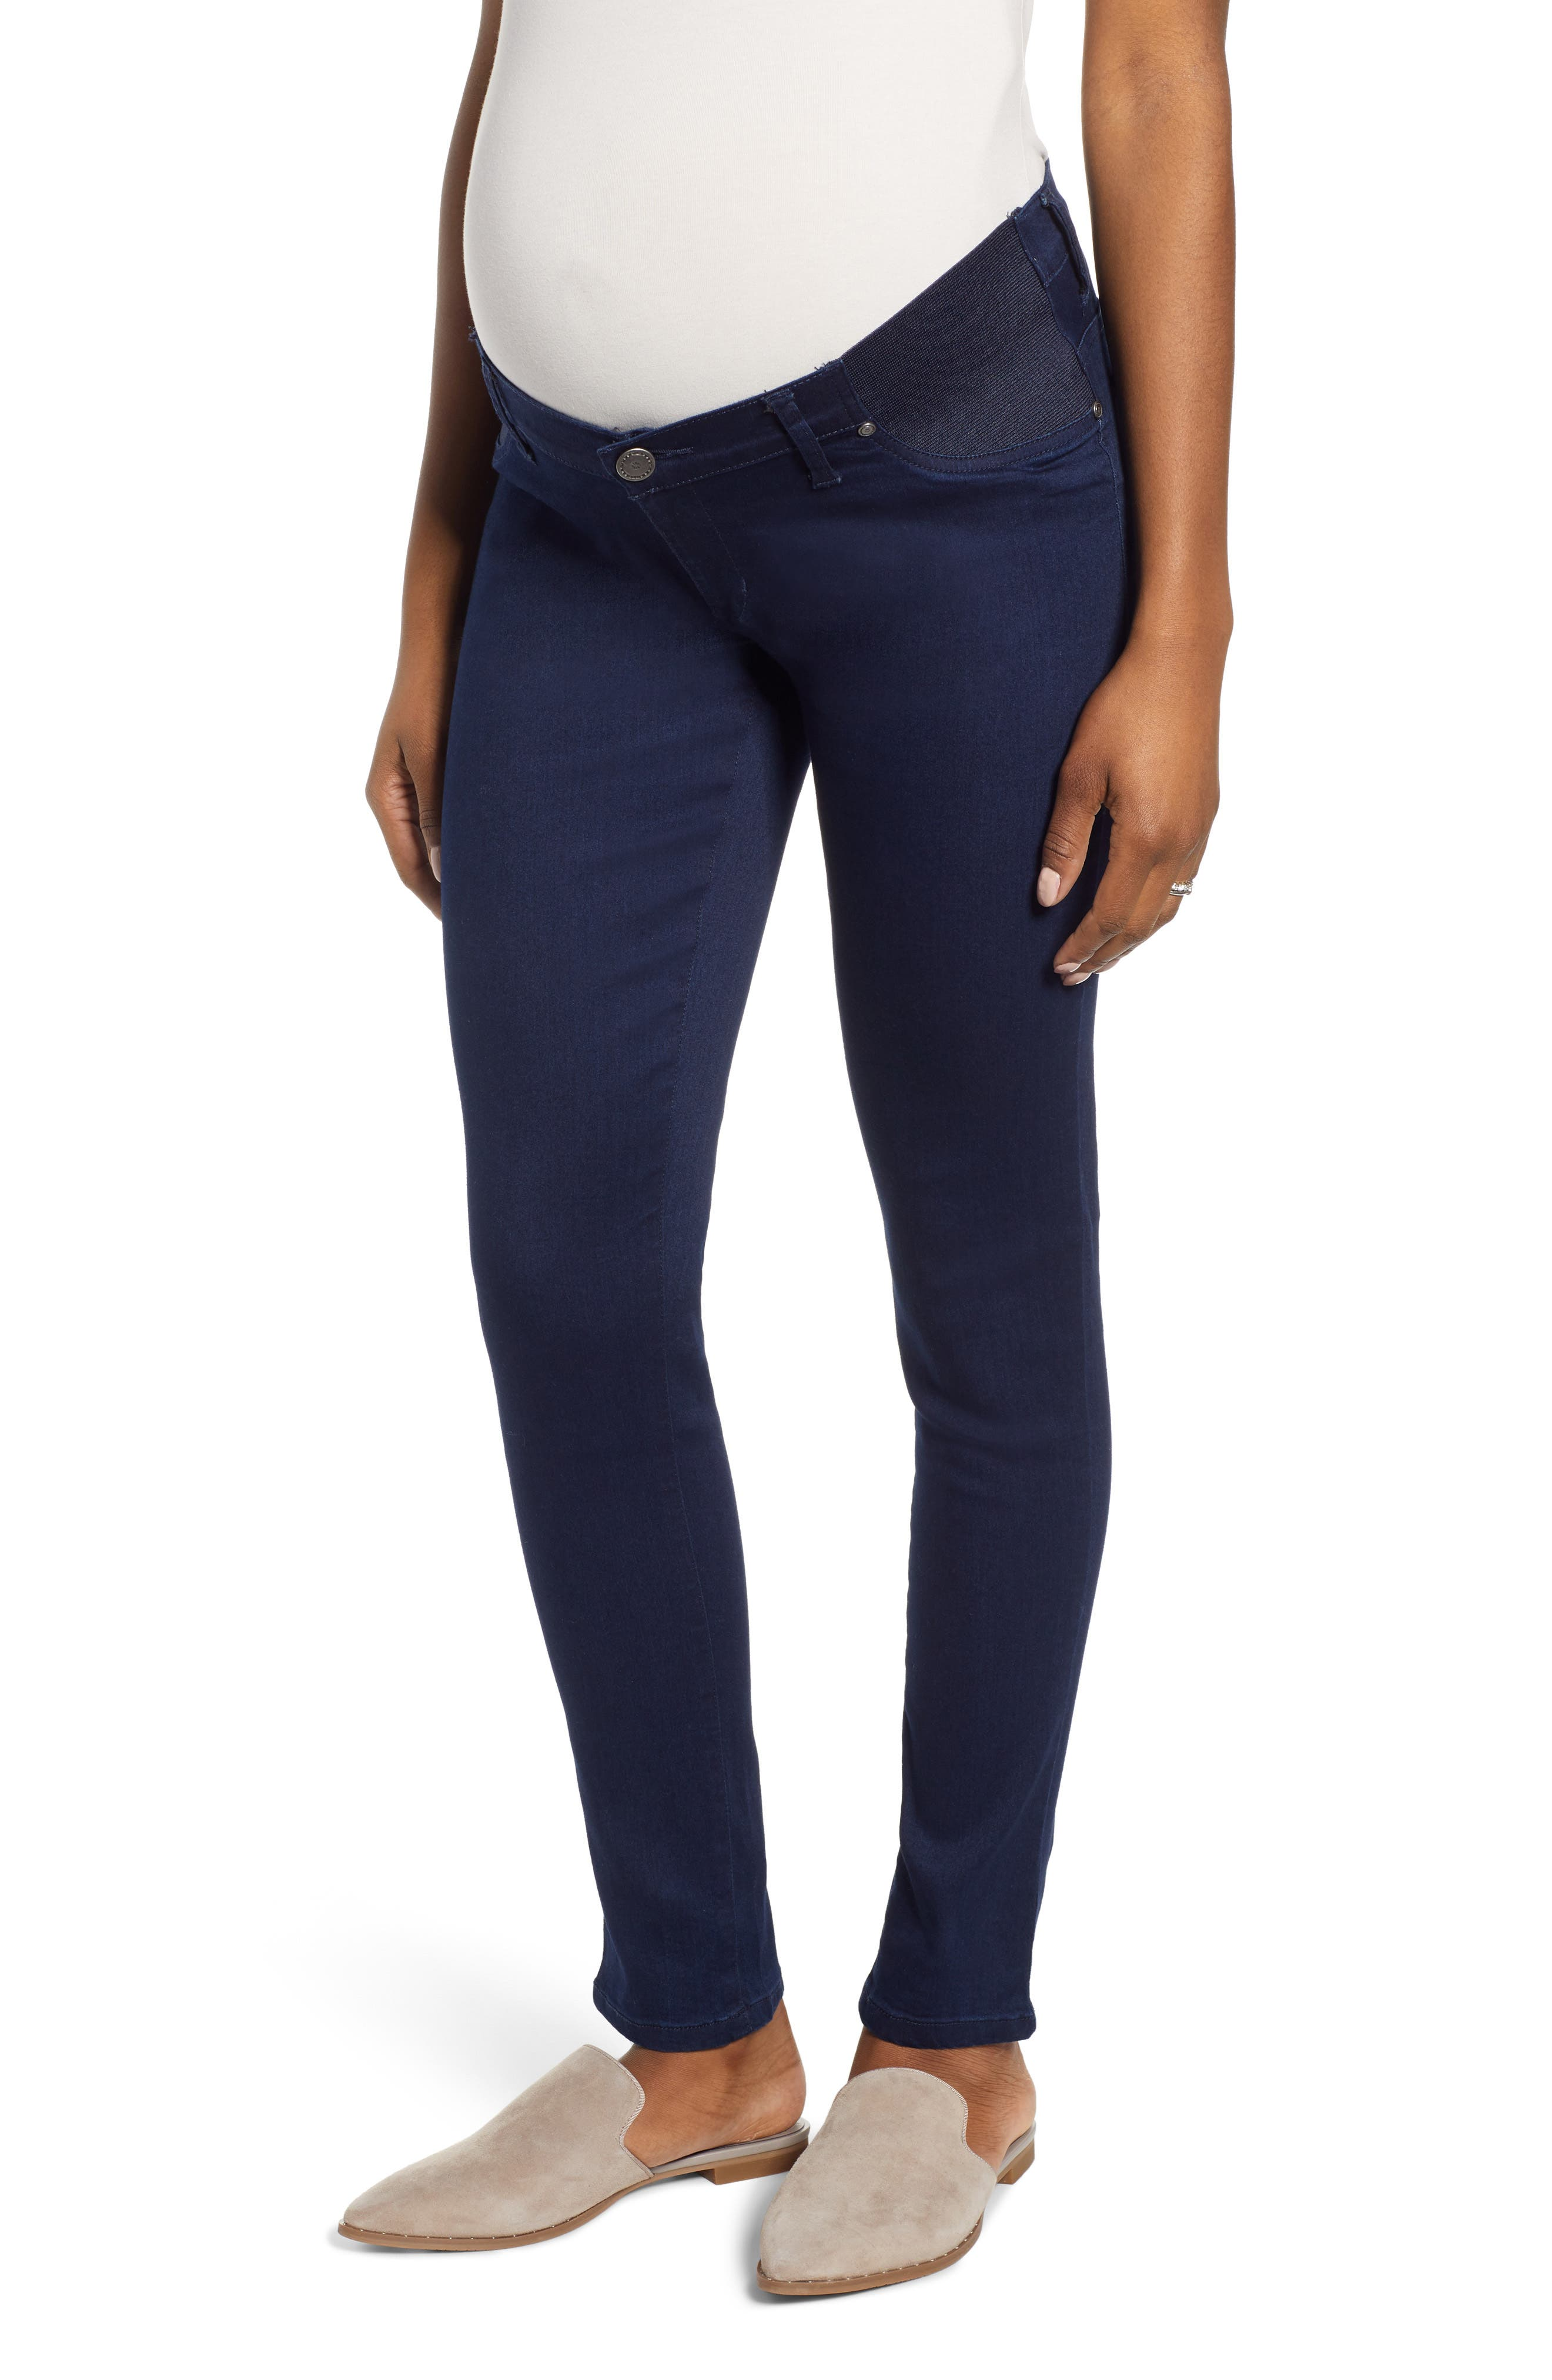 Women's Angel Maternity Comfortable Stretch Maternity Jeans